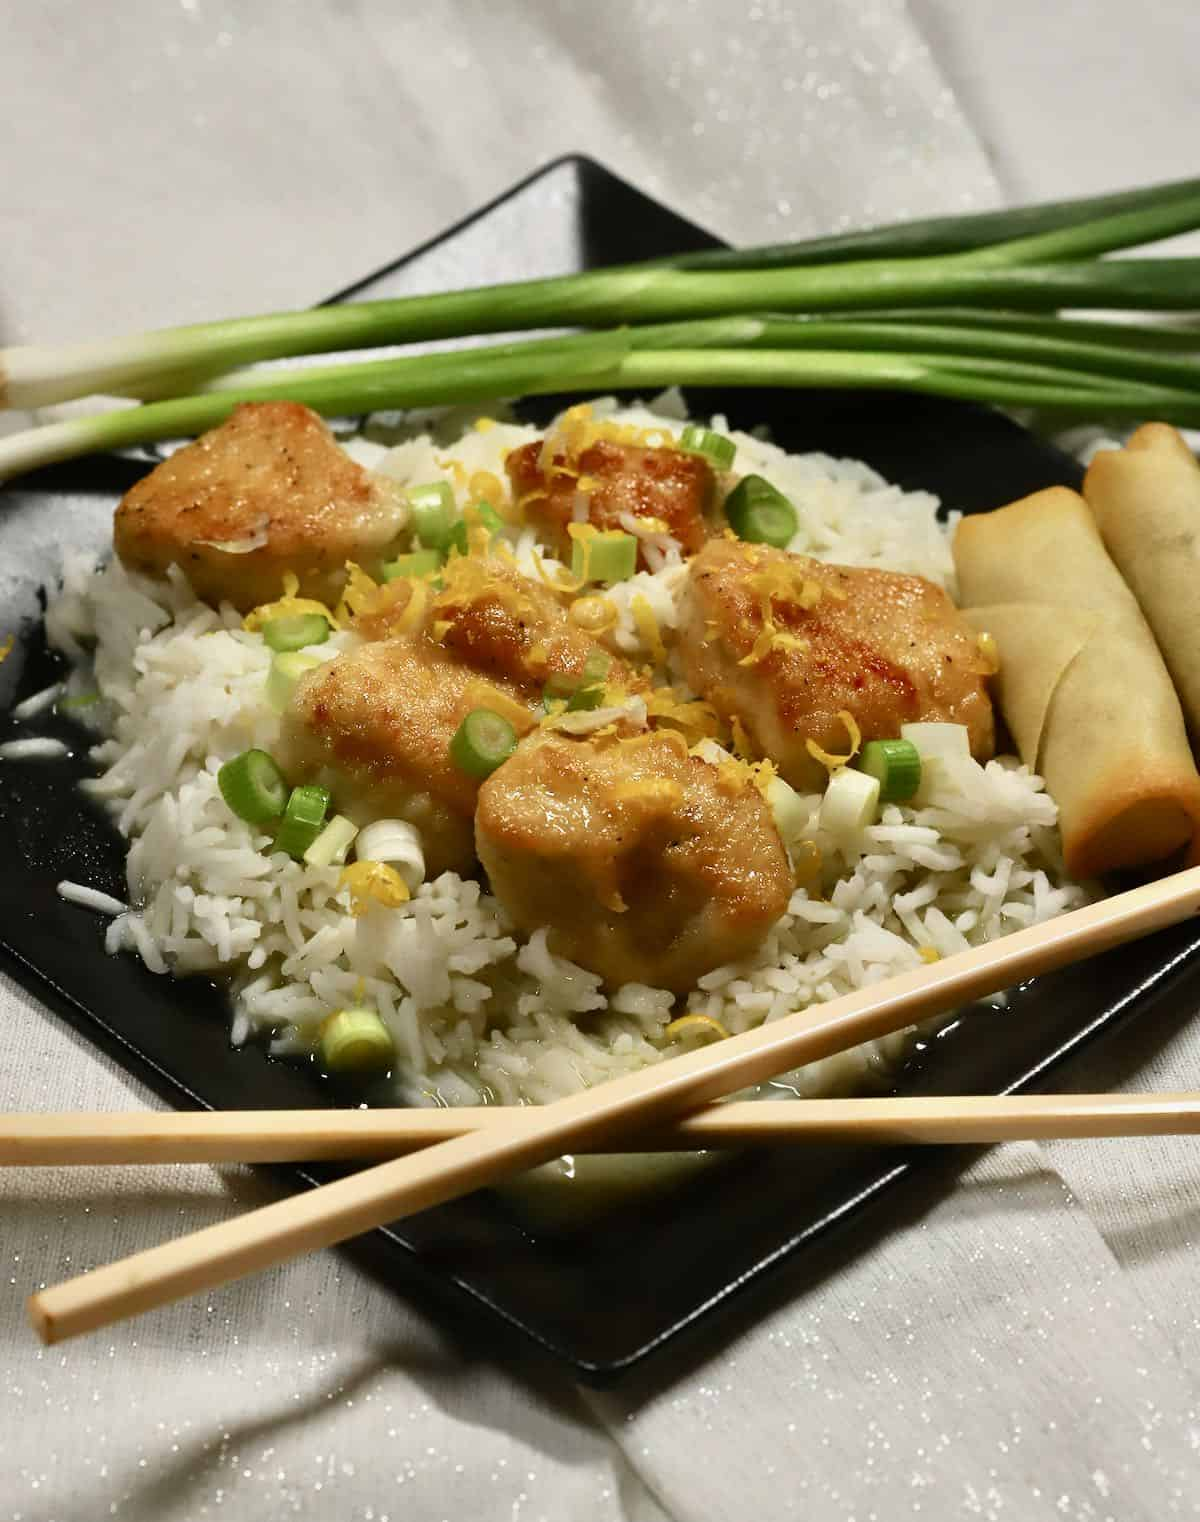 Pan-seared chicken pieces served over rice with scallions on top.